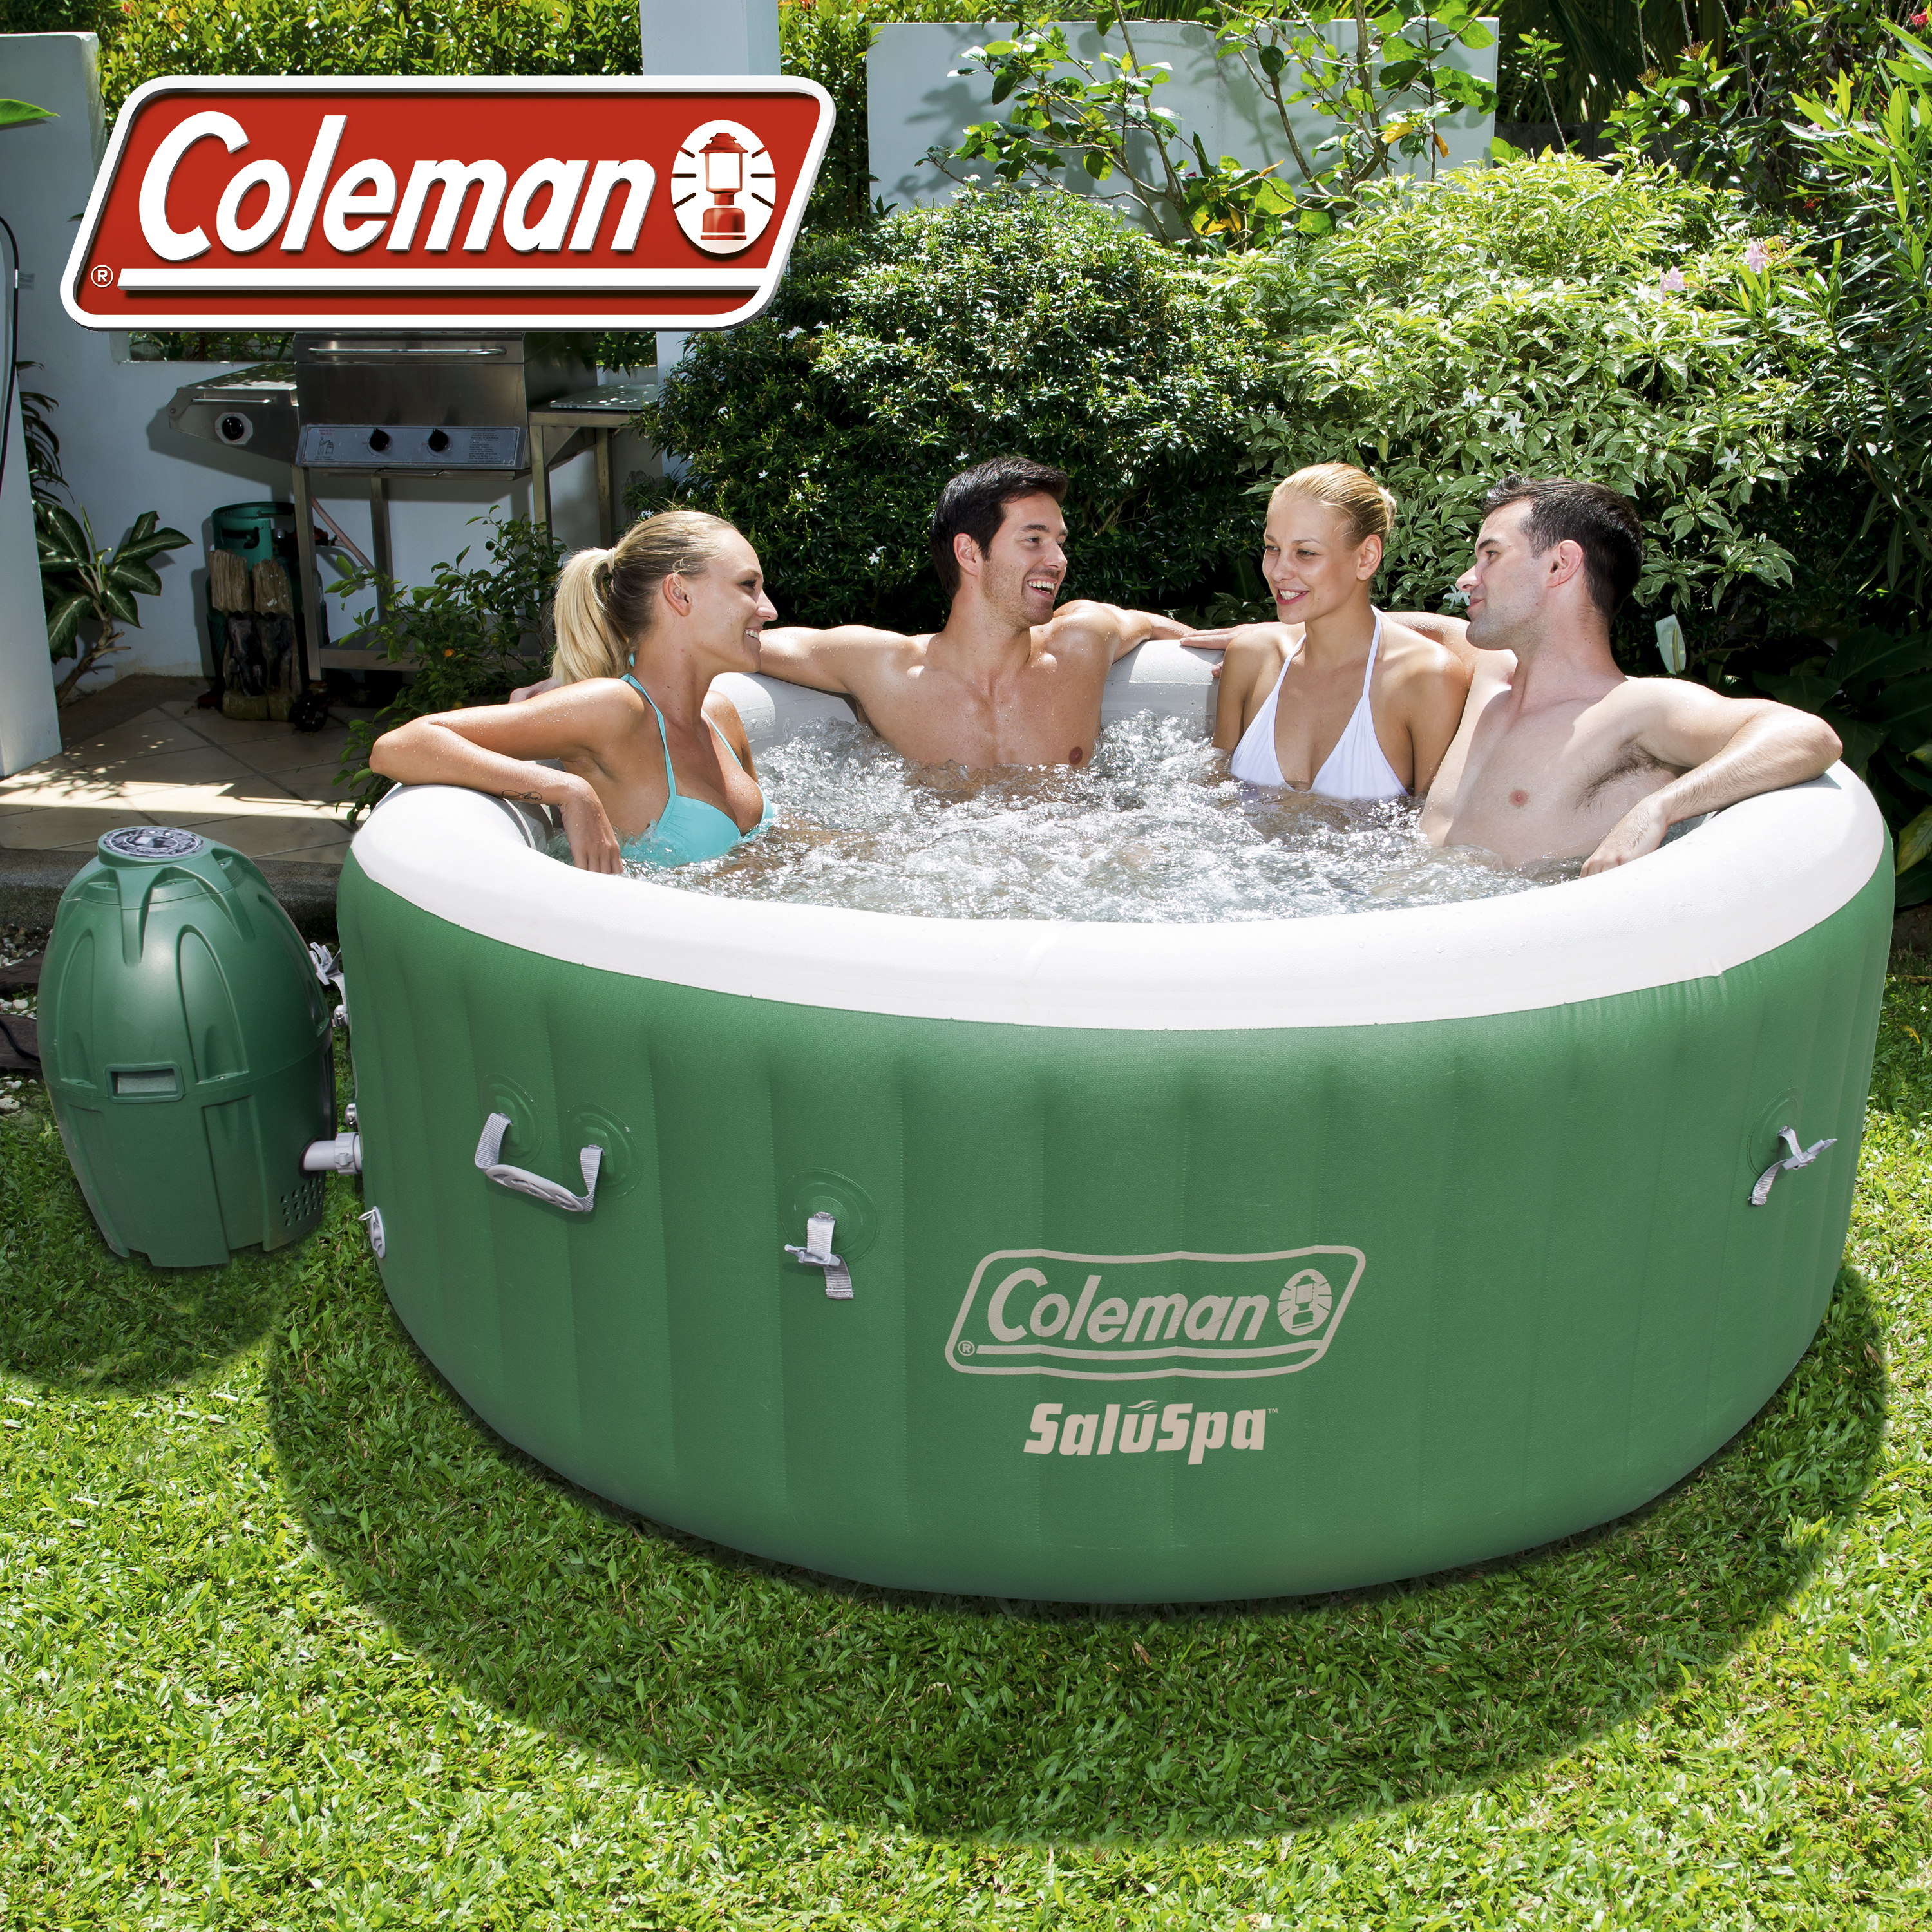 Coleman SaluSpa Inflatable Portable Massage Spa for 4-6 People